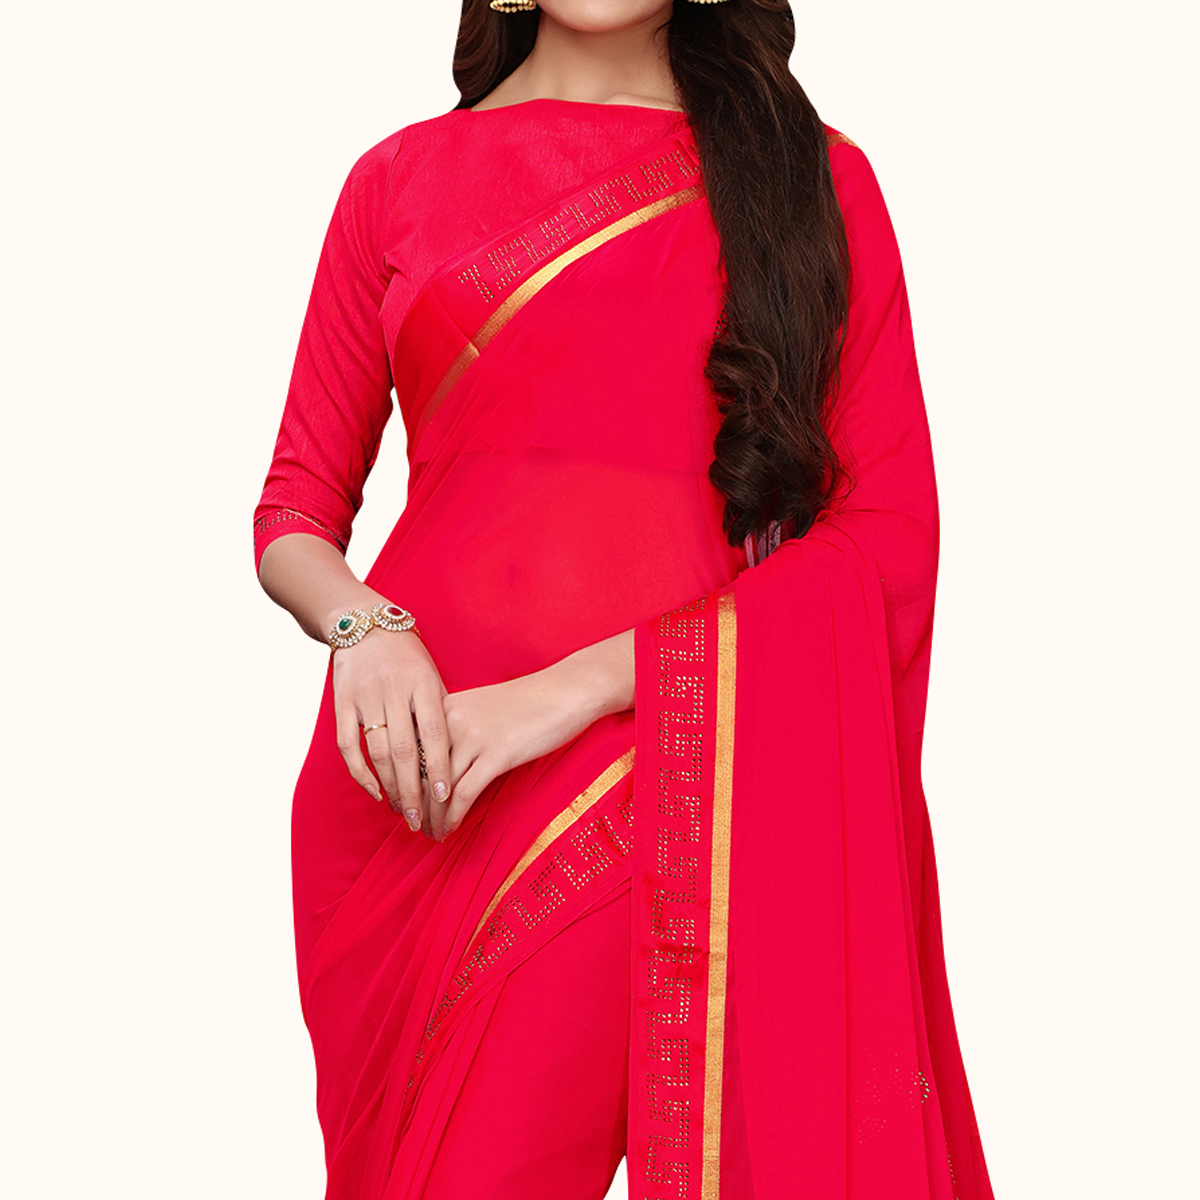 Mesmerising Pink Colored Party Wear Georgette Saree